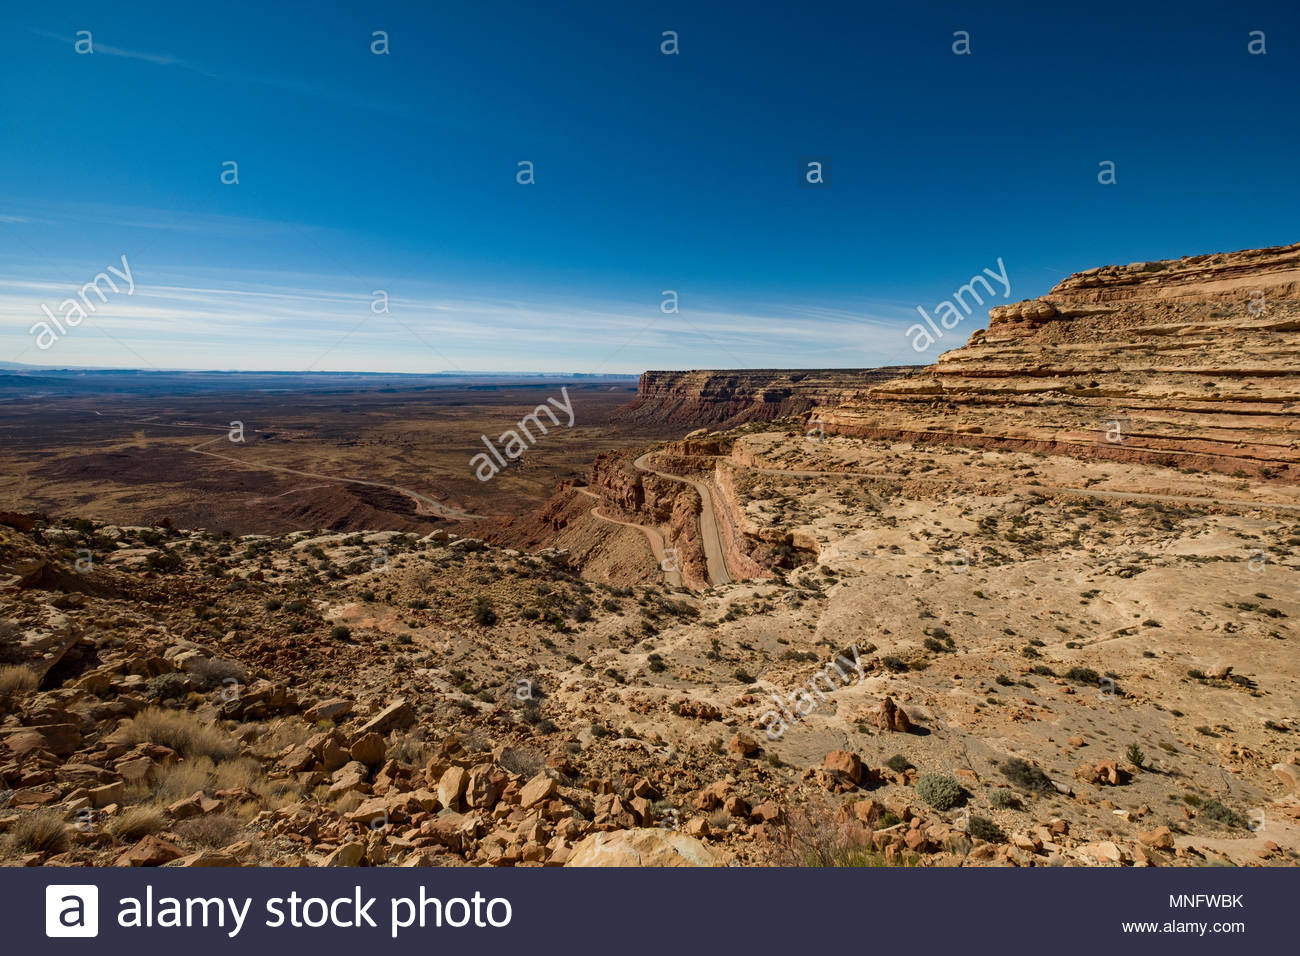 Moki Dugway primitive road, part of Utah State Route 261 twist and turns up Cedar Mesa from the Valley of the Gods 1,200 feet below, San Juan County,  - Stock Image